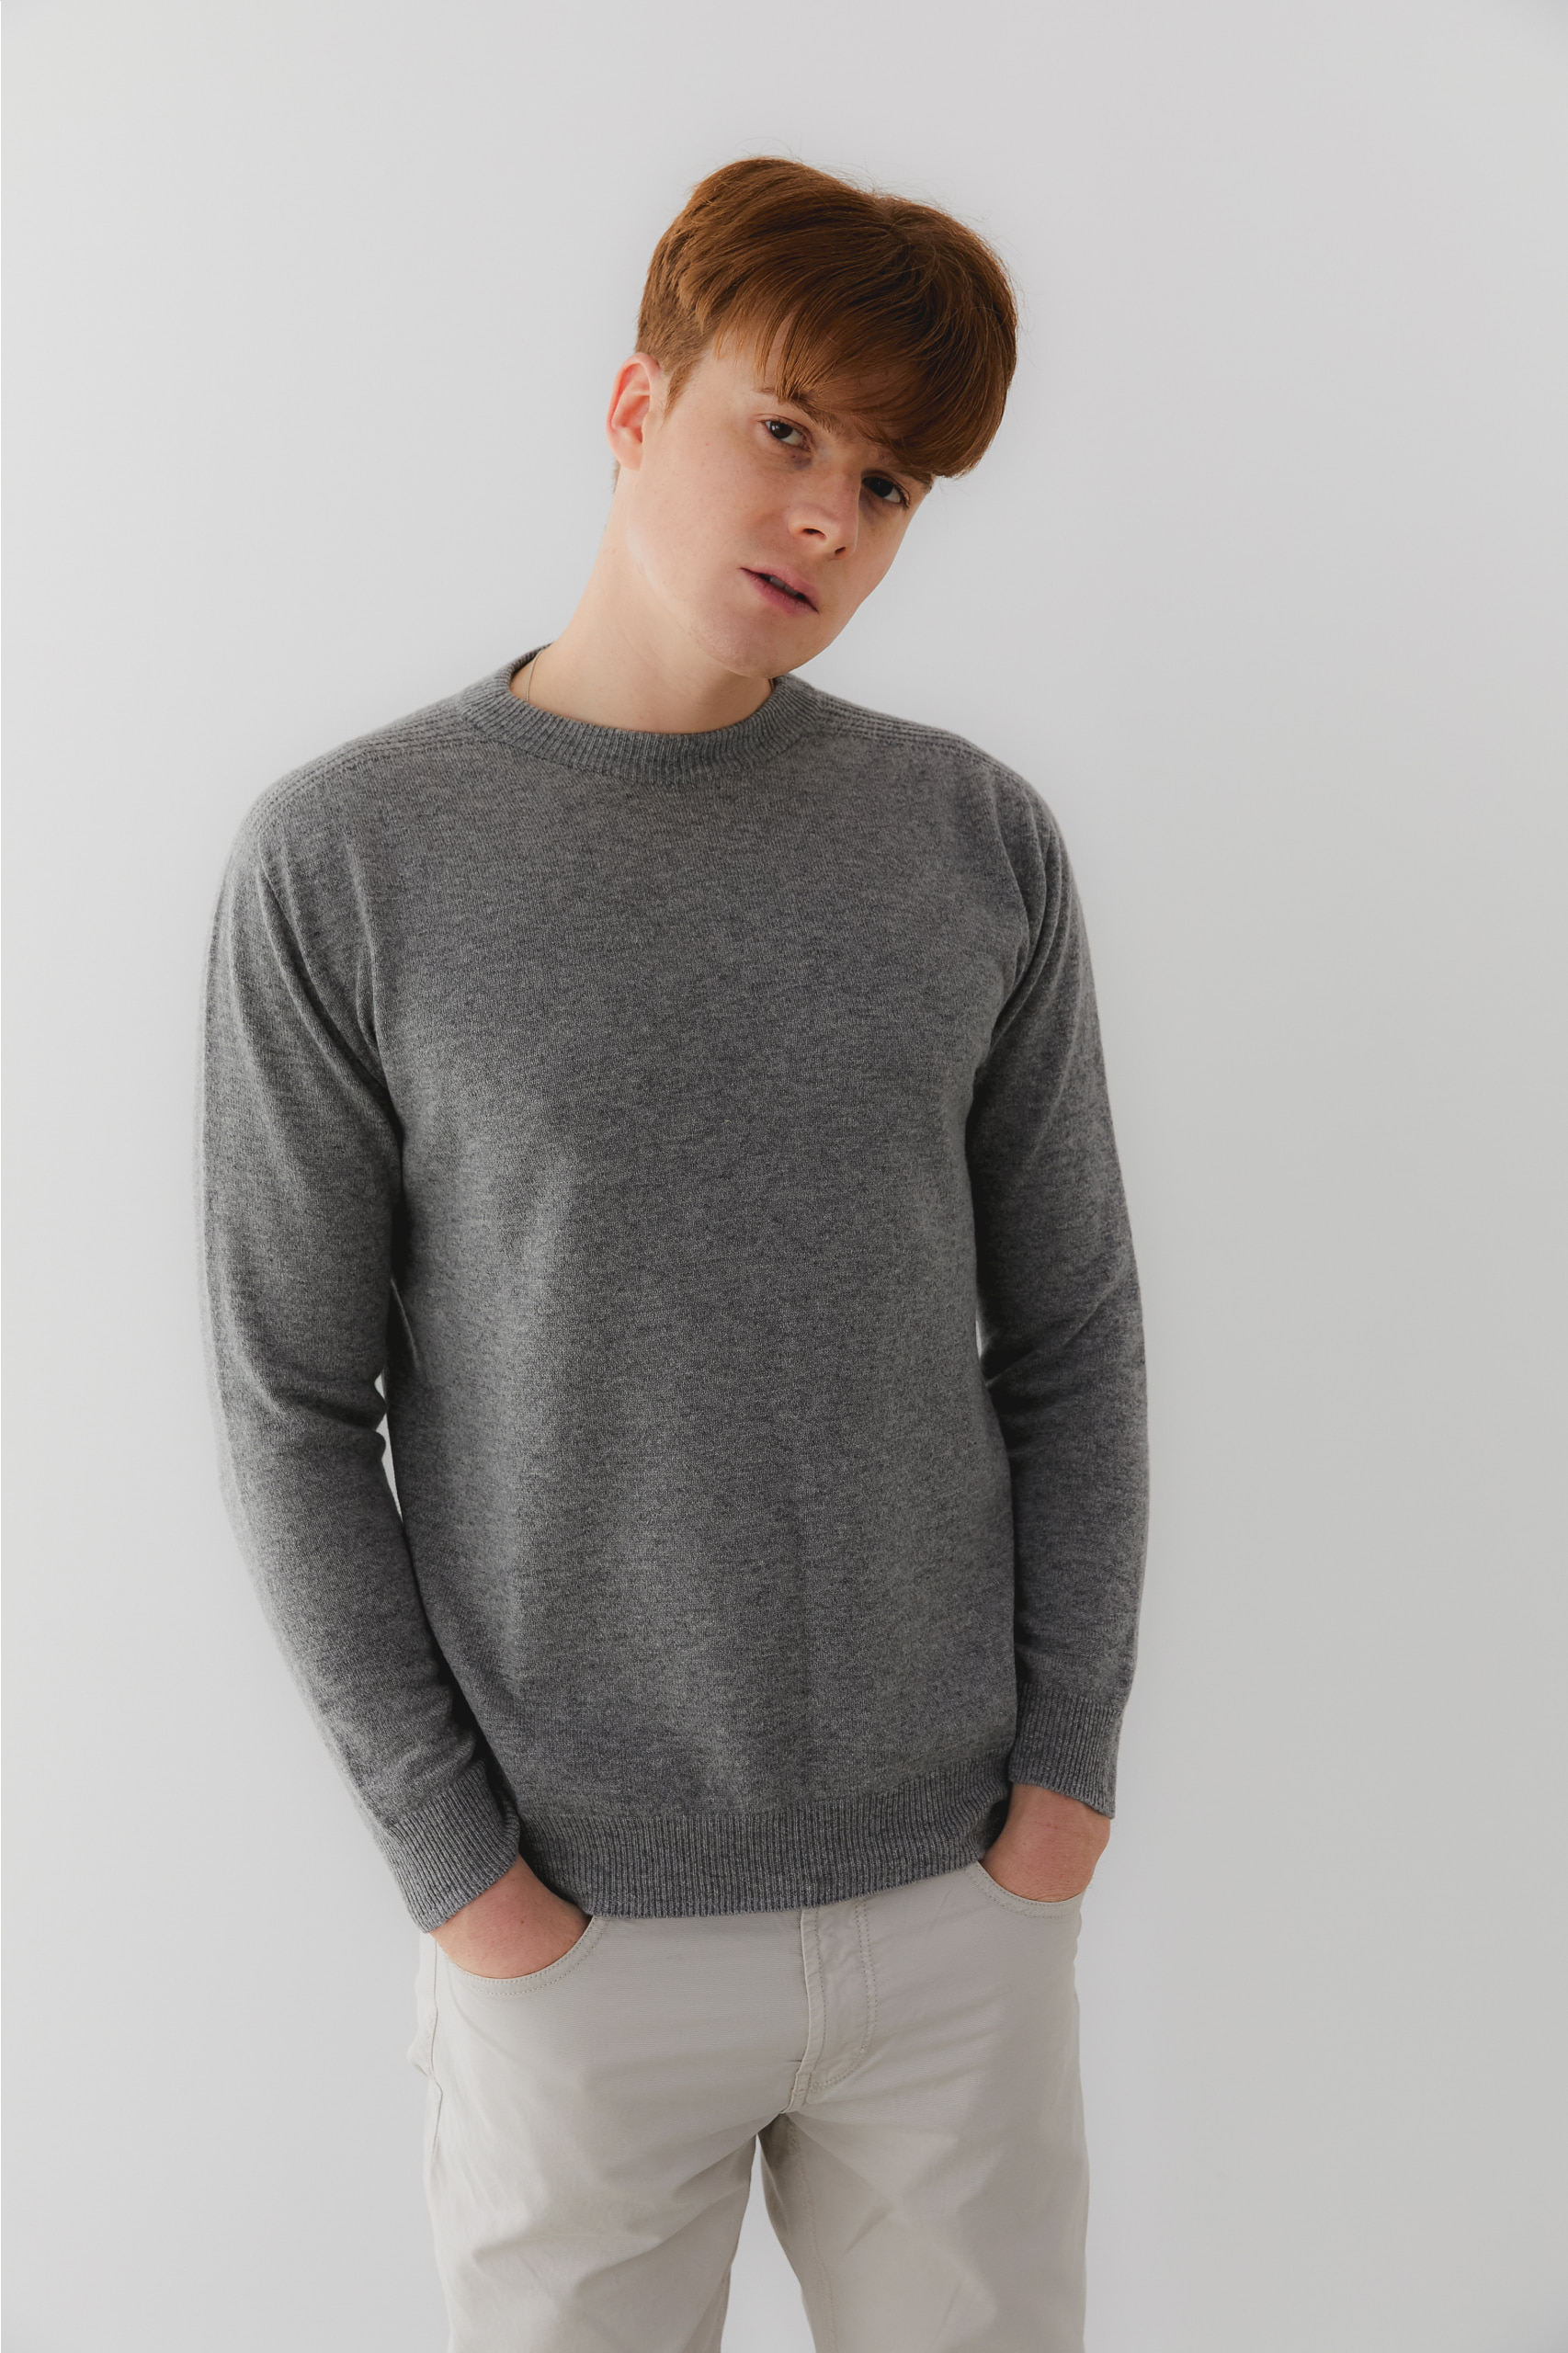 프리미엄 캐시미어 100 남성 라운드넥 스웨터 [Pure cashmere100 whole-garment knitting roundneck pullover - Warm gray